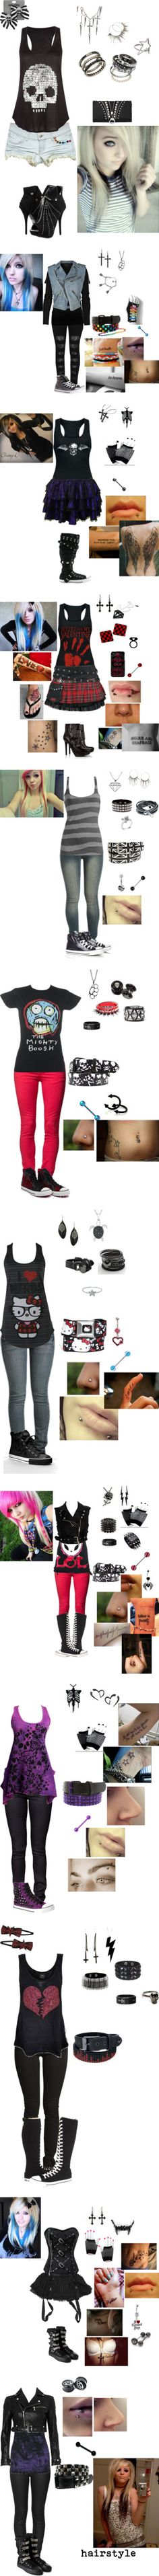 """""""Emo / gothic clothes Part 4"""" by foreverbroken ❤ liked on Polyvore - jessi's basic wardrobe she wishes"""